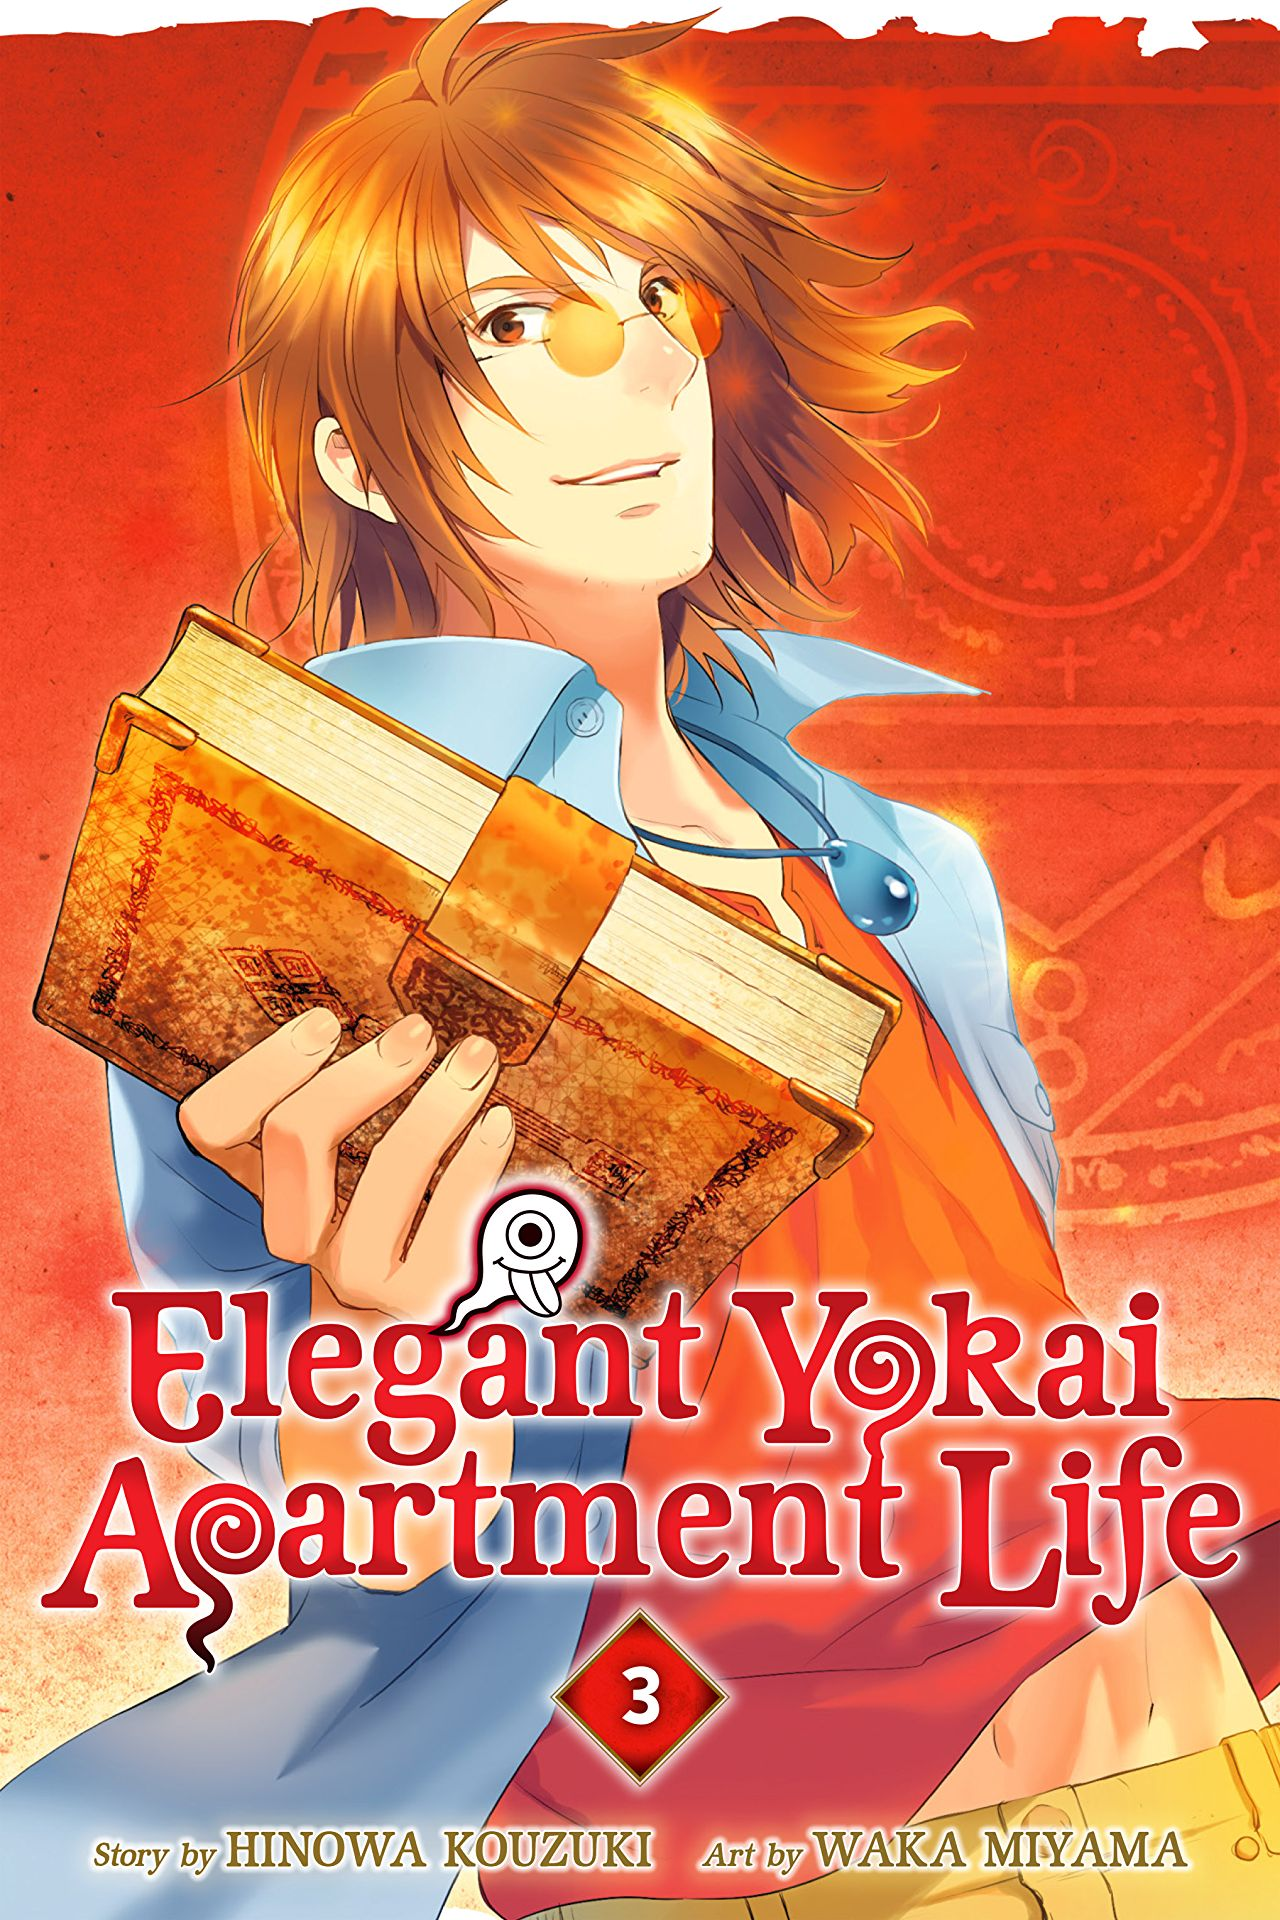 Elegant Yokai Apartment Life Vol. 3 Review